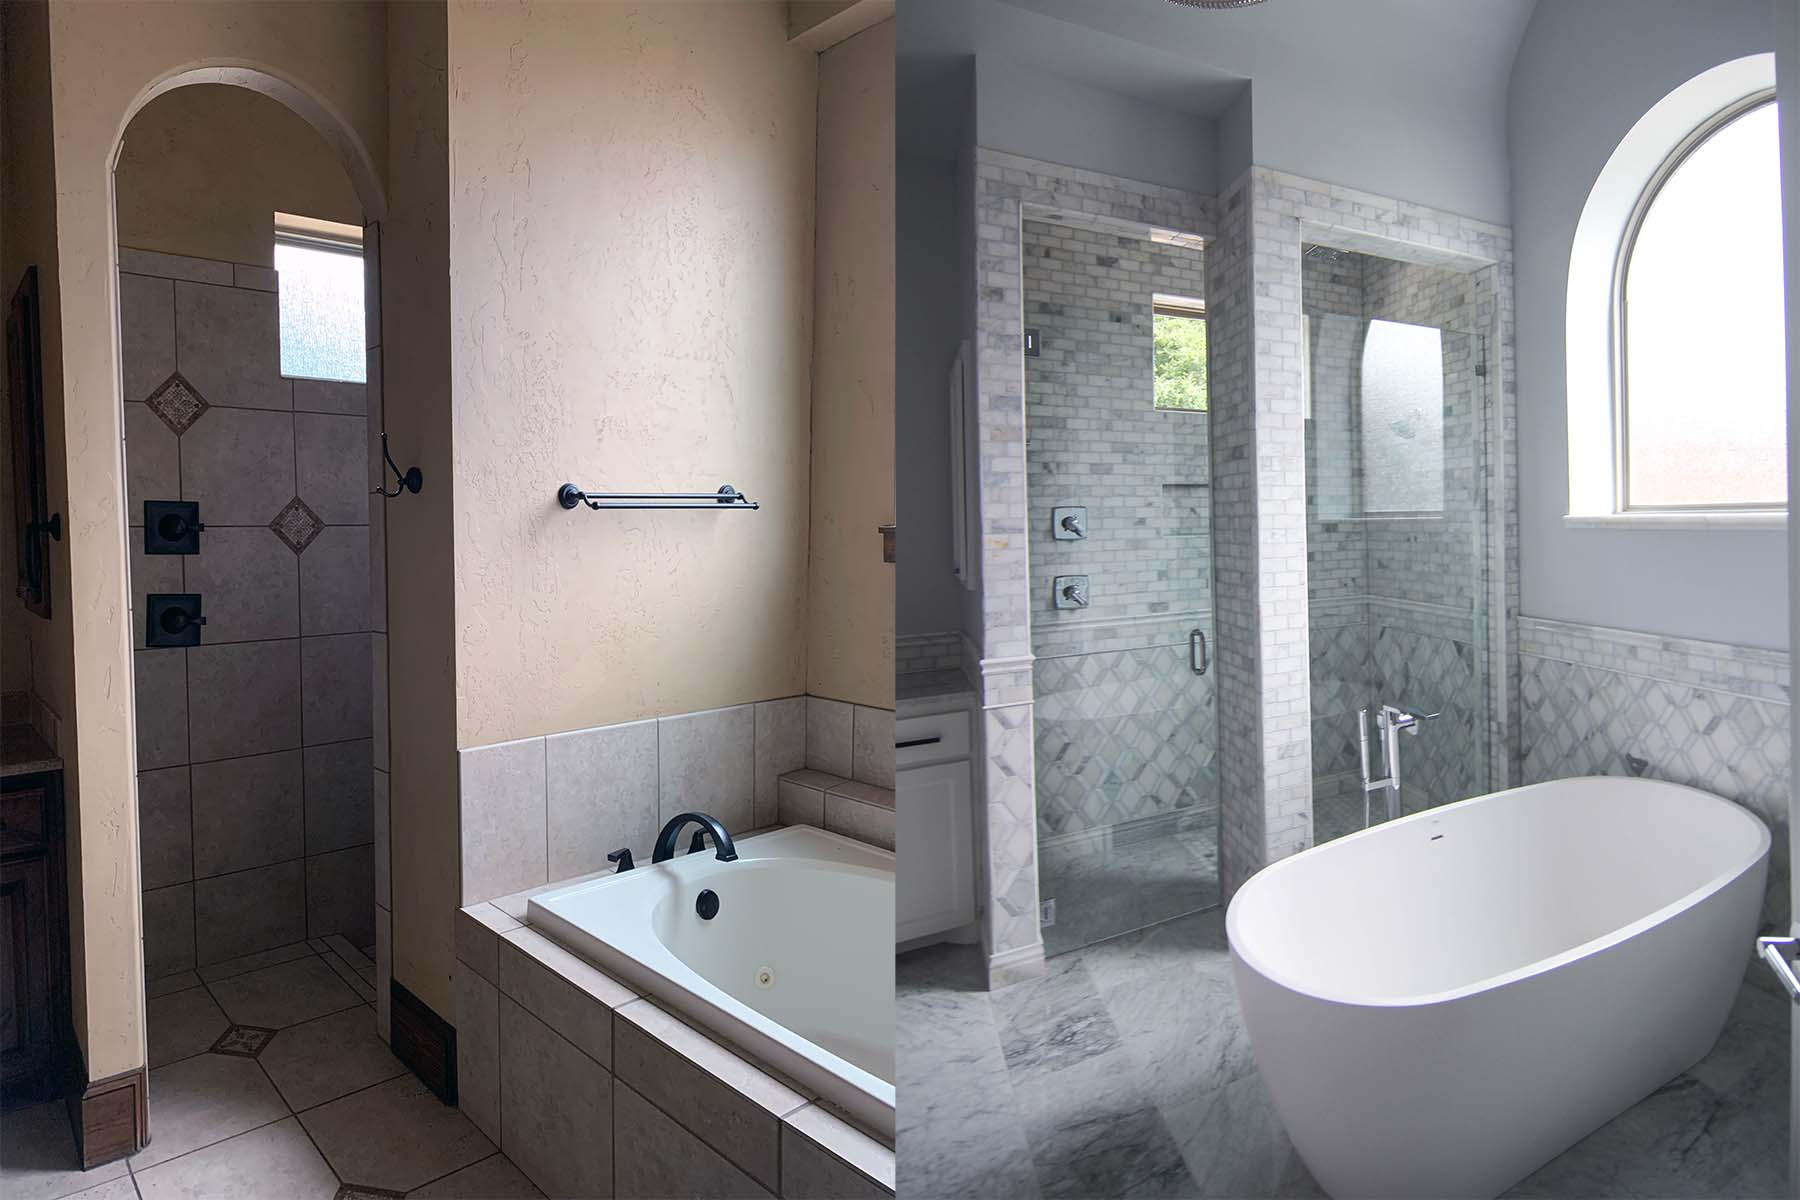 Bathroom remodel DFW, Keller, Southlake, Colleyville